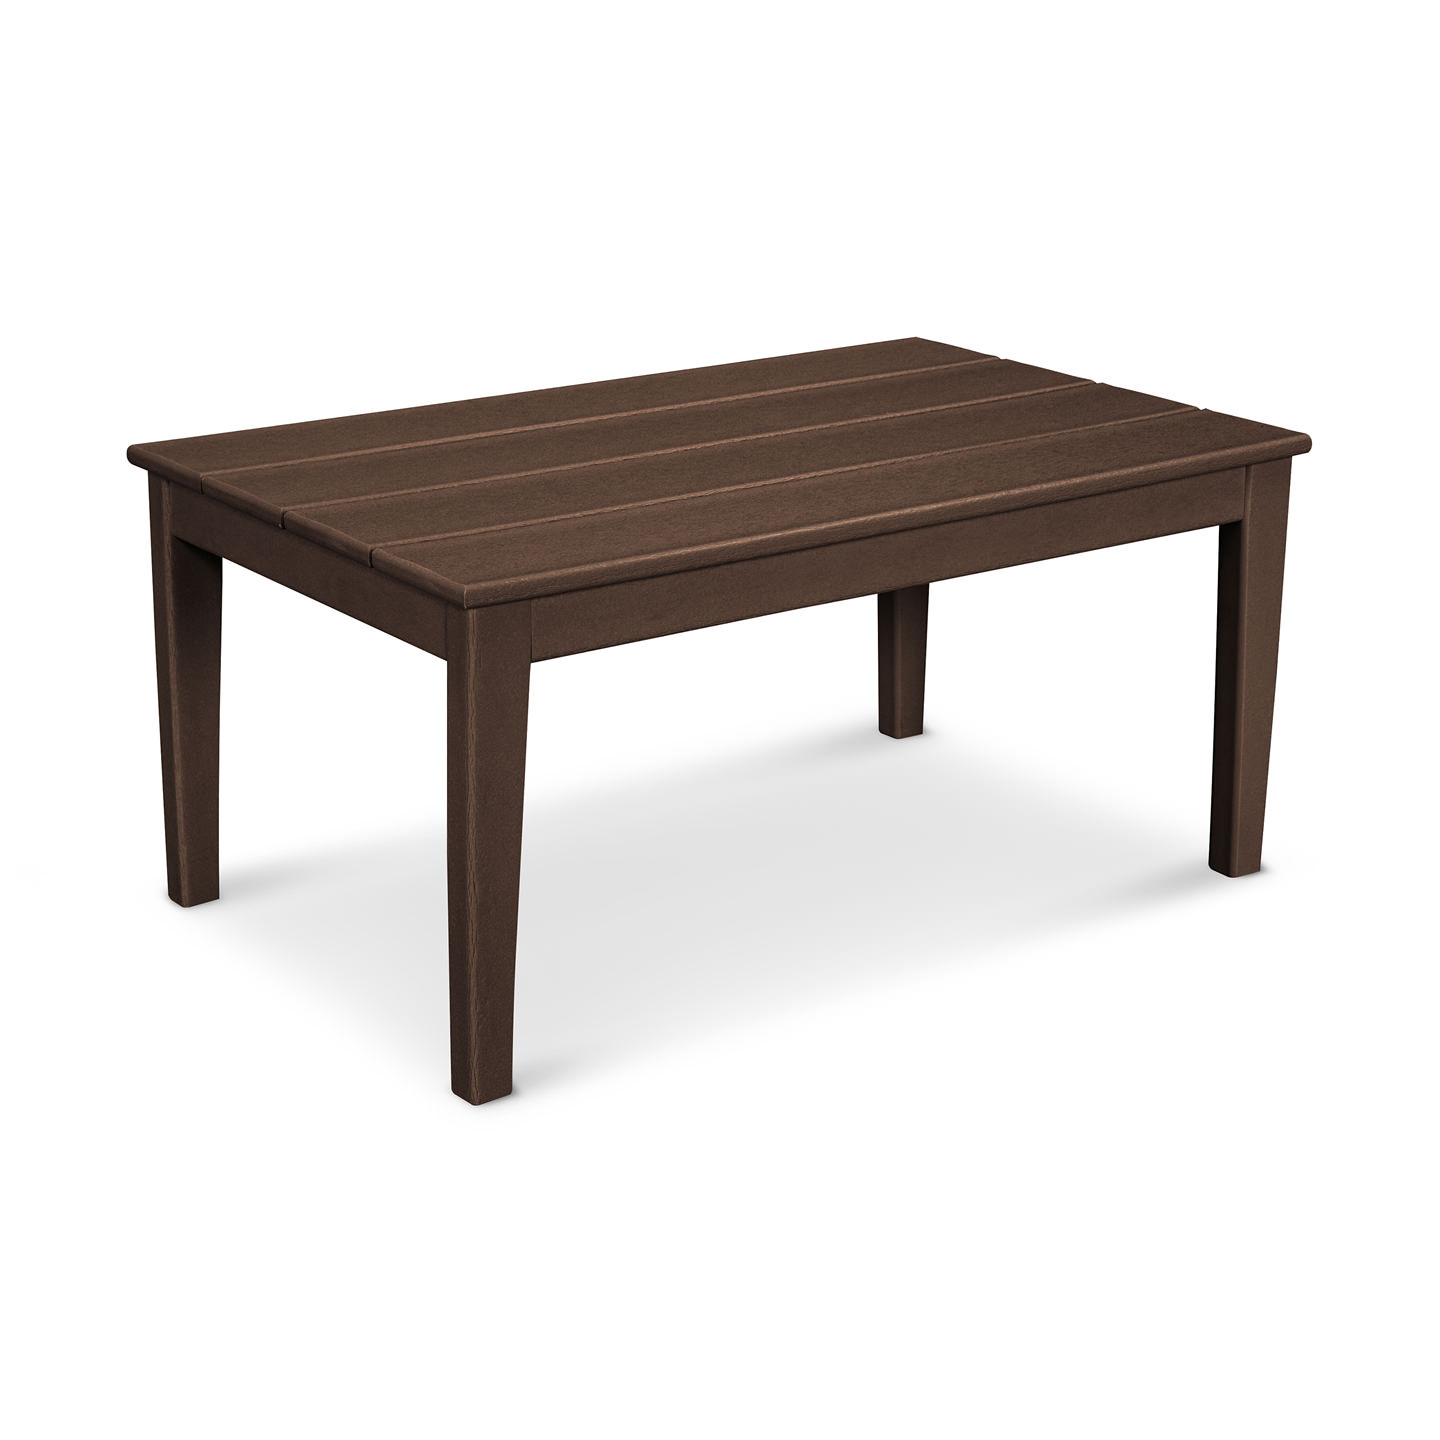 Polywood newport 22 x 36 coffee table polywood newport polywood newport 22 x 36 coffee table polywood newport polywood outdoor furniture collections geotapseo Choice Image